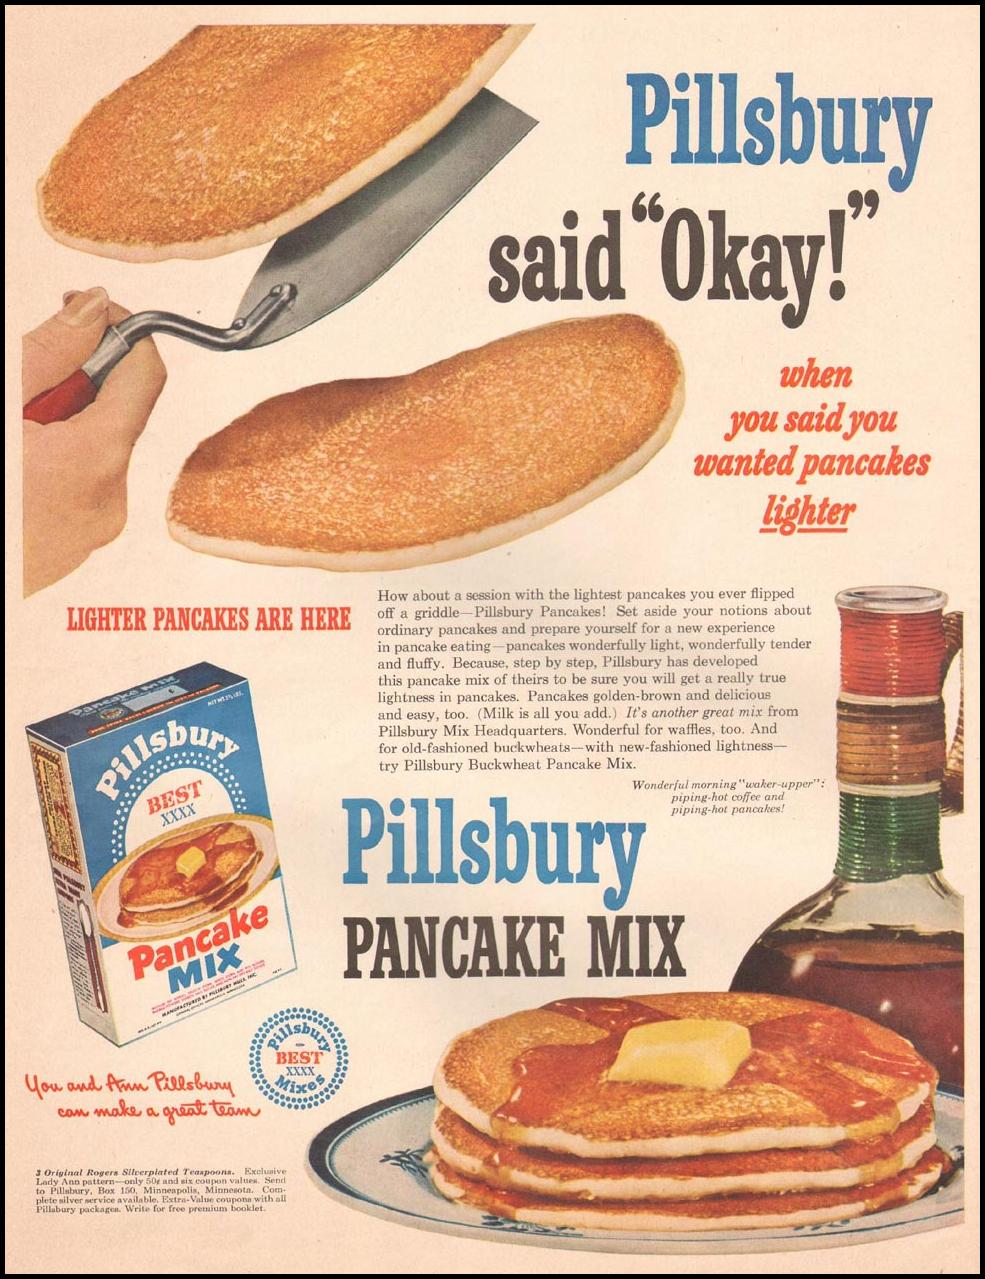 PILLSBURY PANCAKE MIX LIFE 04/30/1951 p. 110